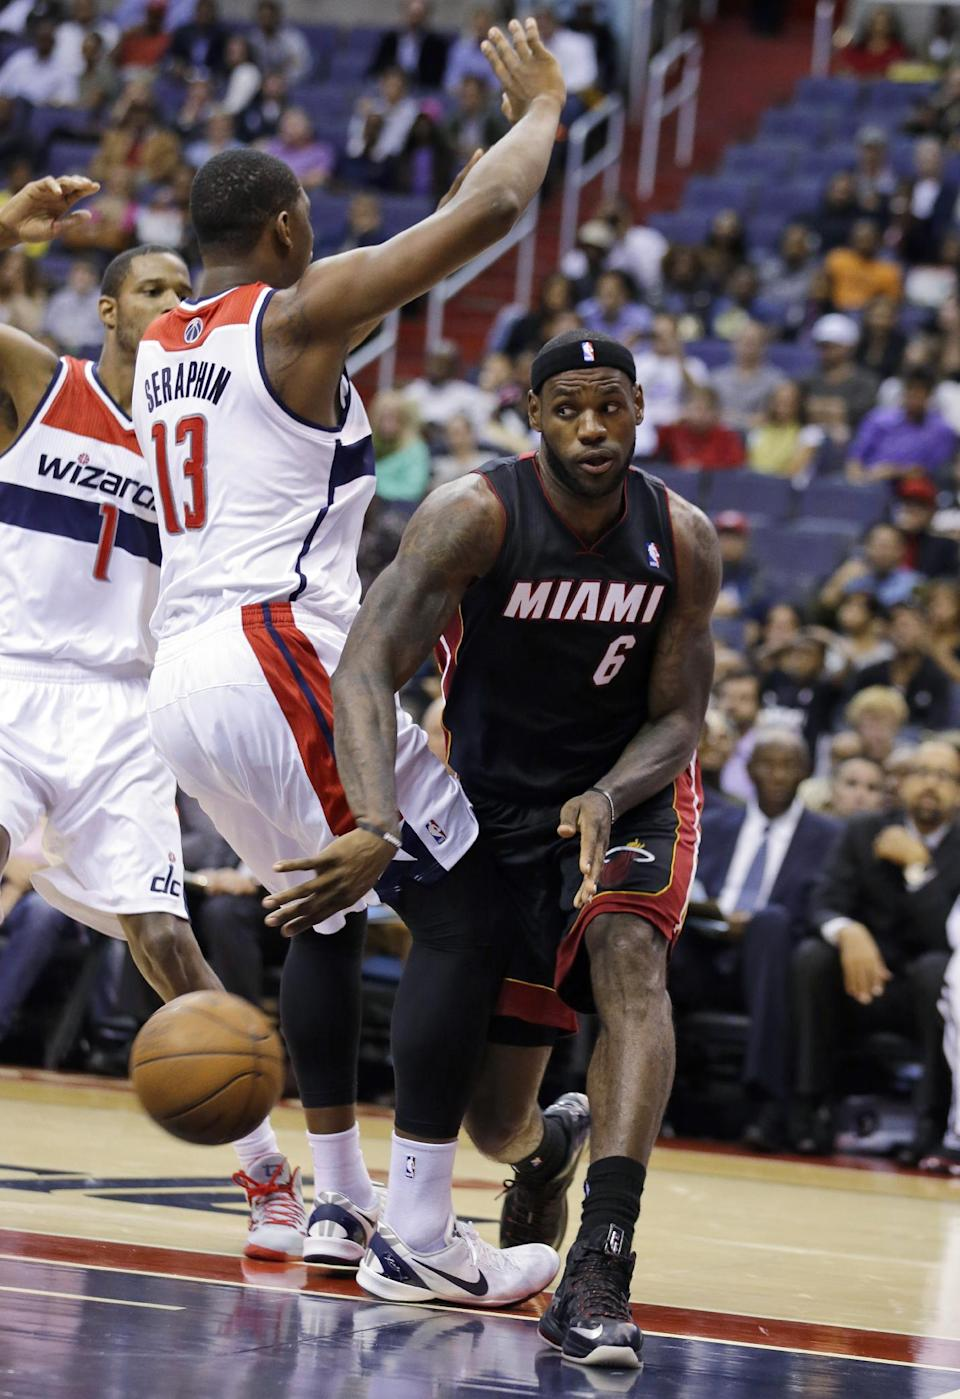 Beal scores 29 as Wizards beat Heat 100-82